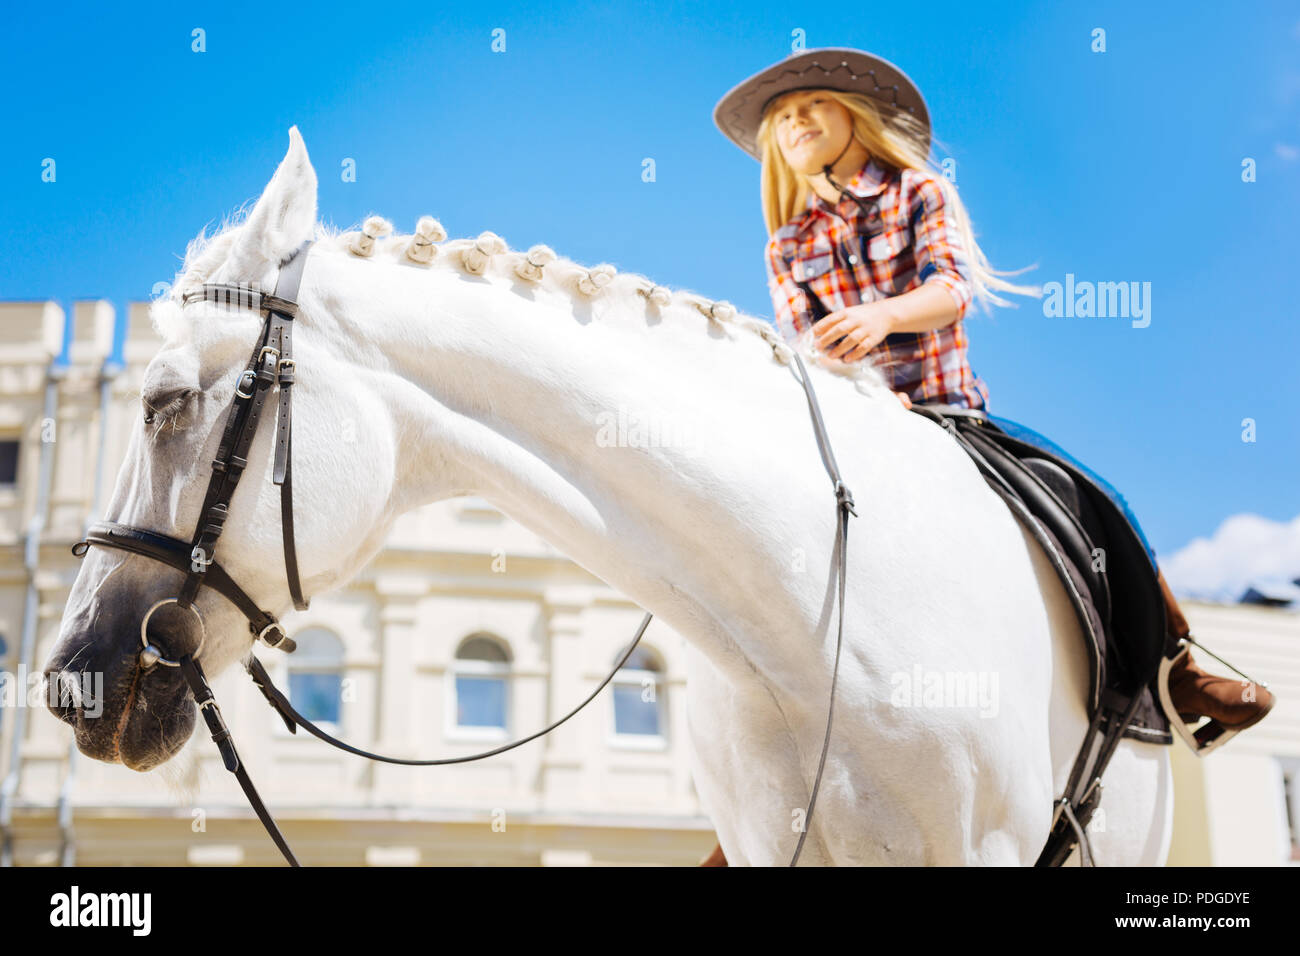 Stylish cowboy girl wearing brown riding boots riding horse - Stock Image